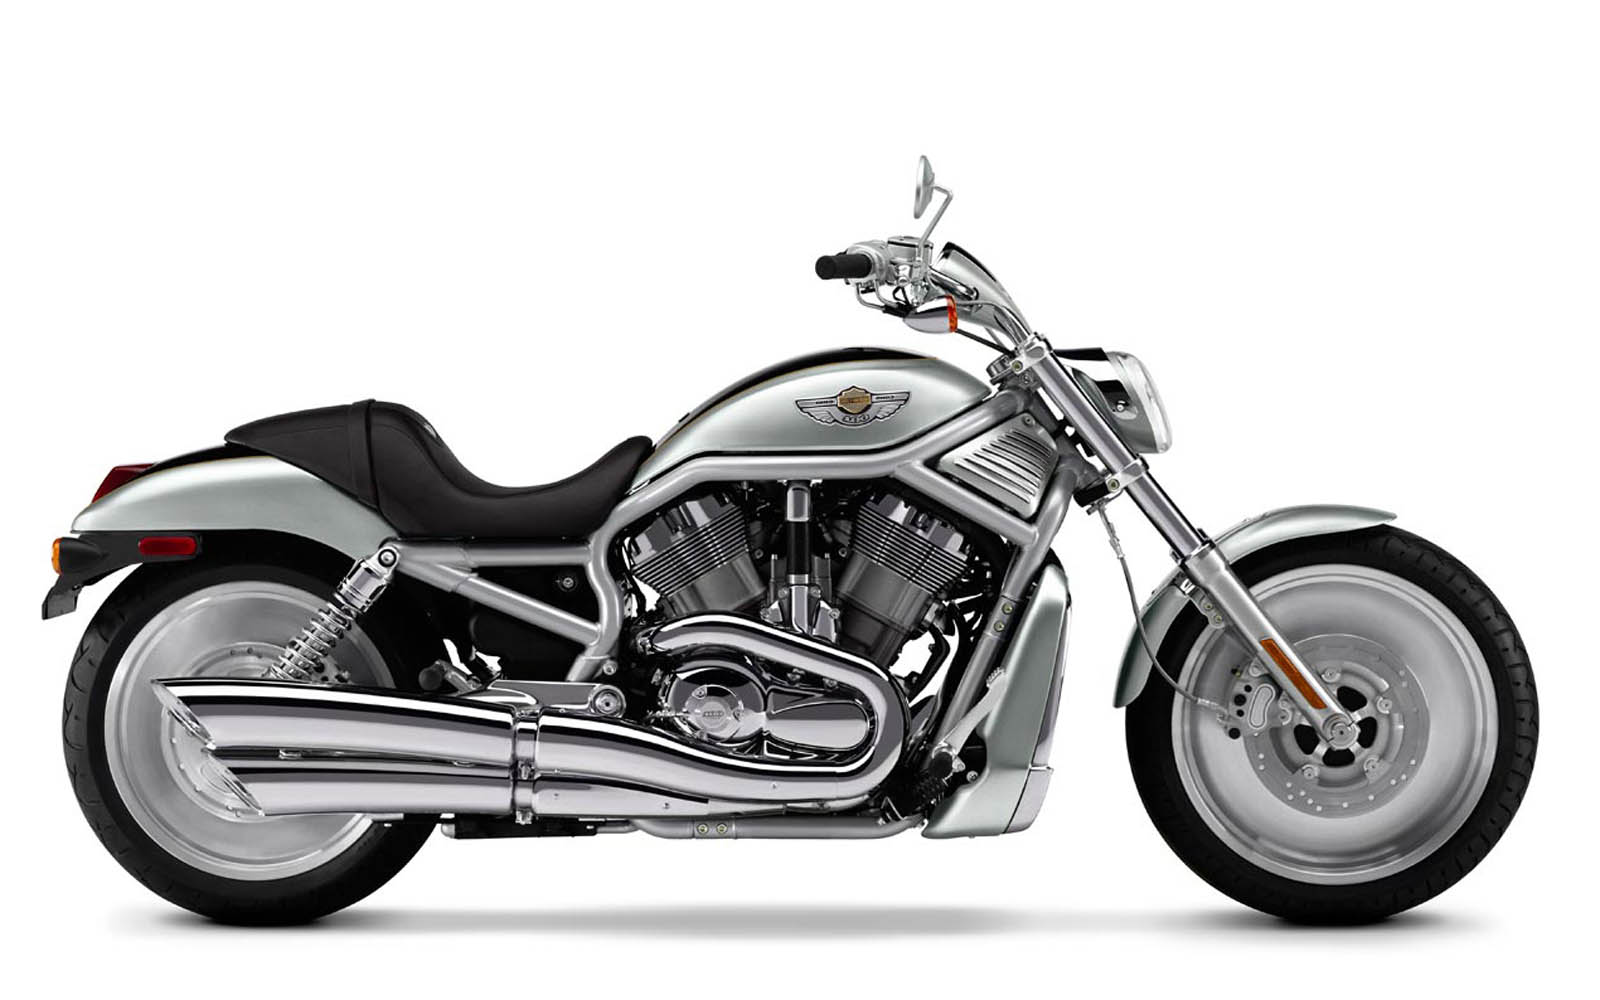 Wallpapers harley davidson bikes desktop wallpapers harley davidson